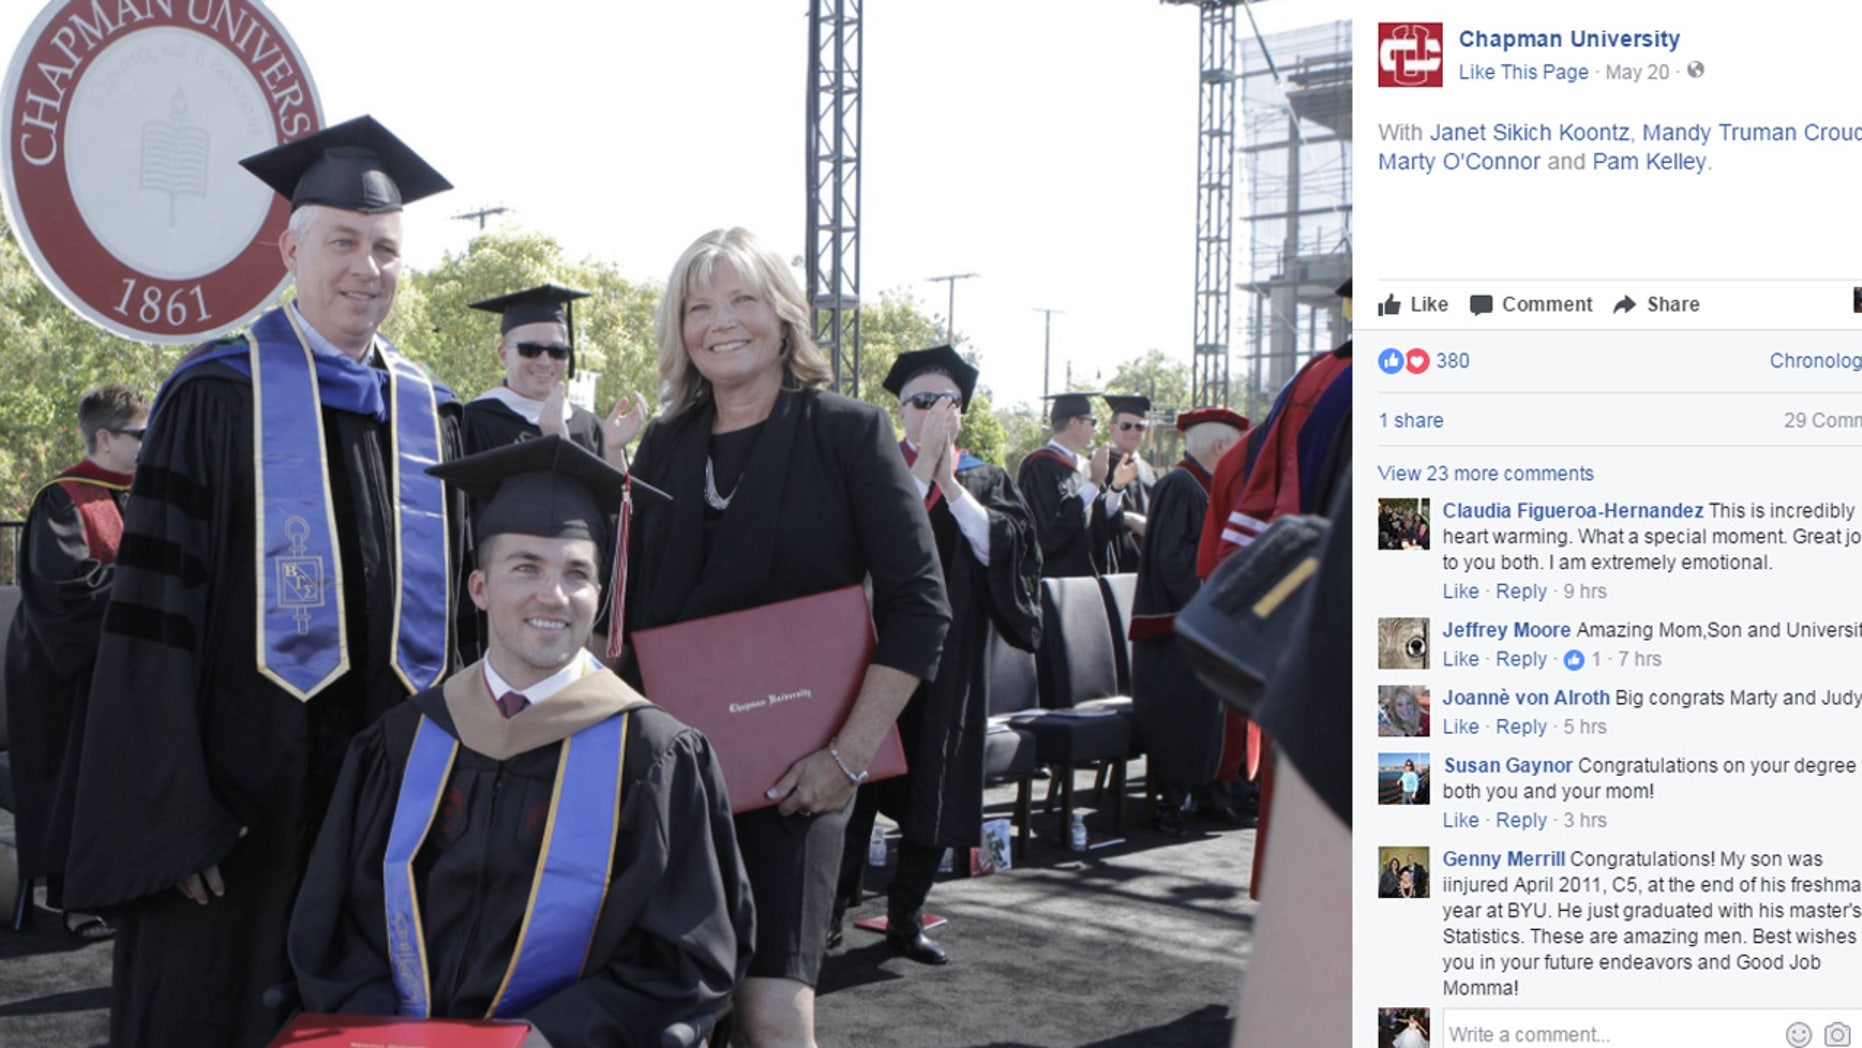 Chapman University surprised Marty O'Connor's mom, Judy, with an honorary degree at the ceremony.